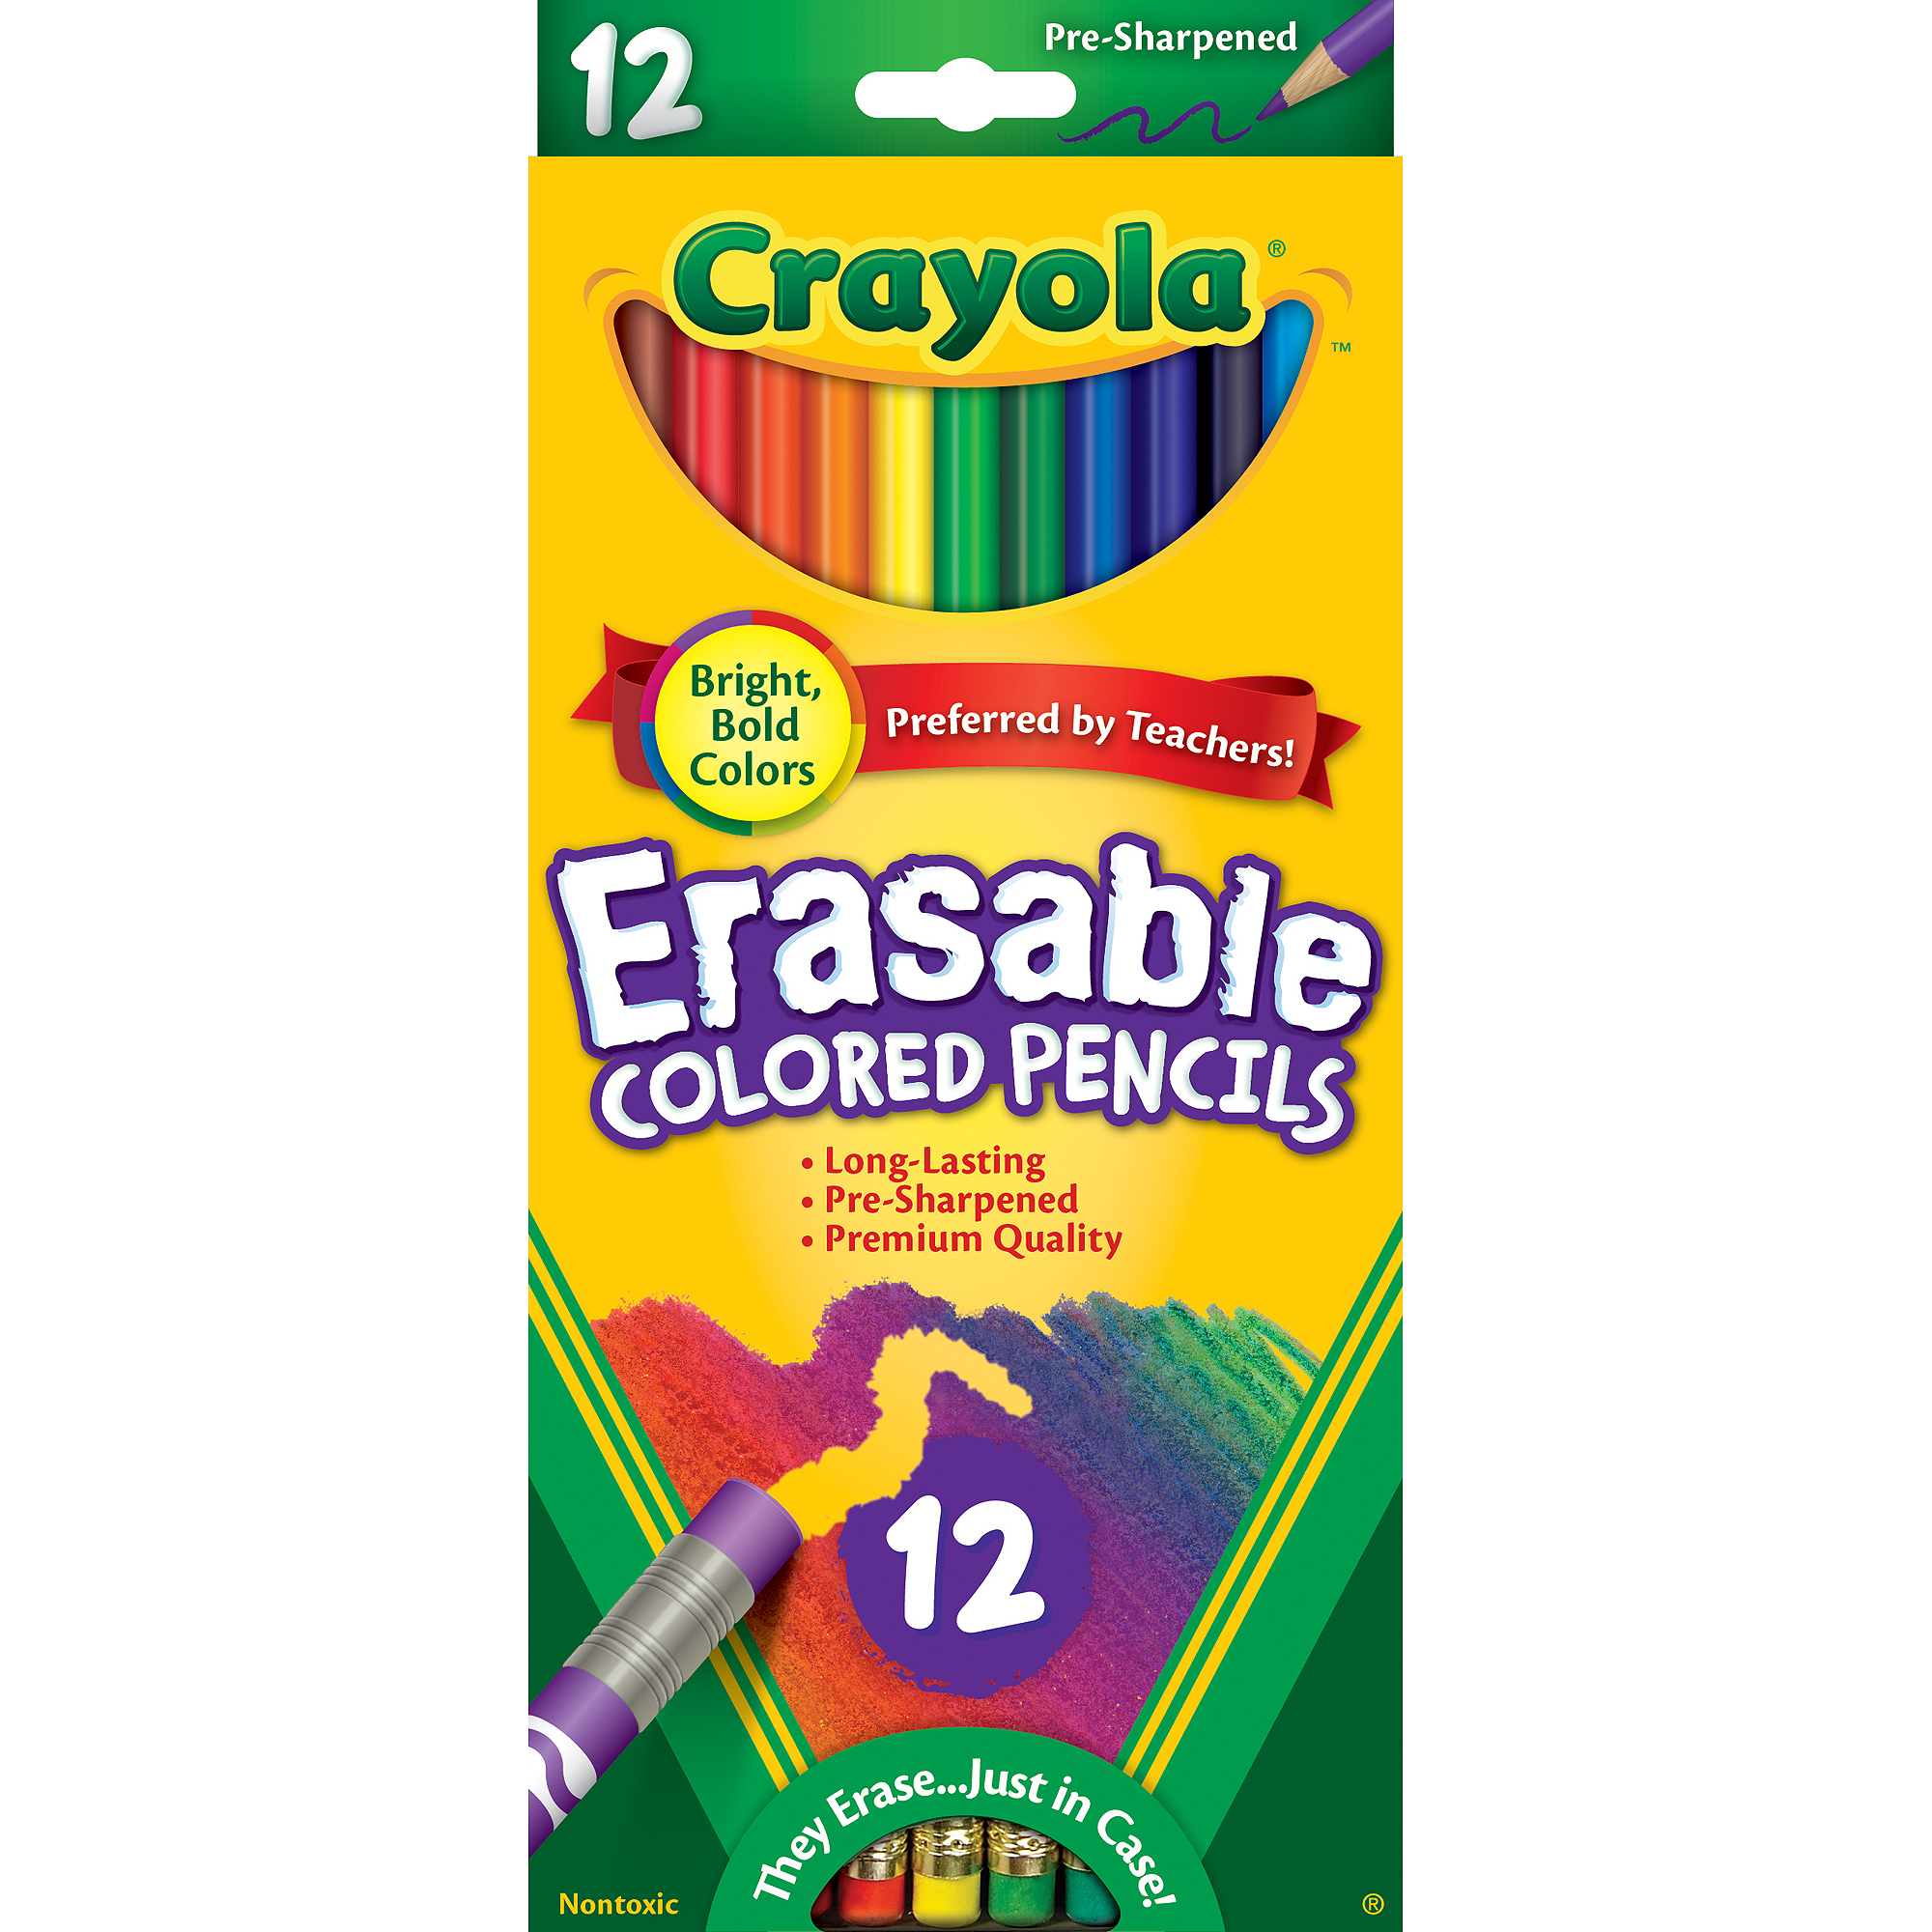 Crayola Erasable Colored Pencils, 12pk